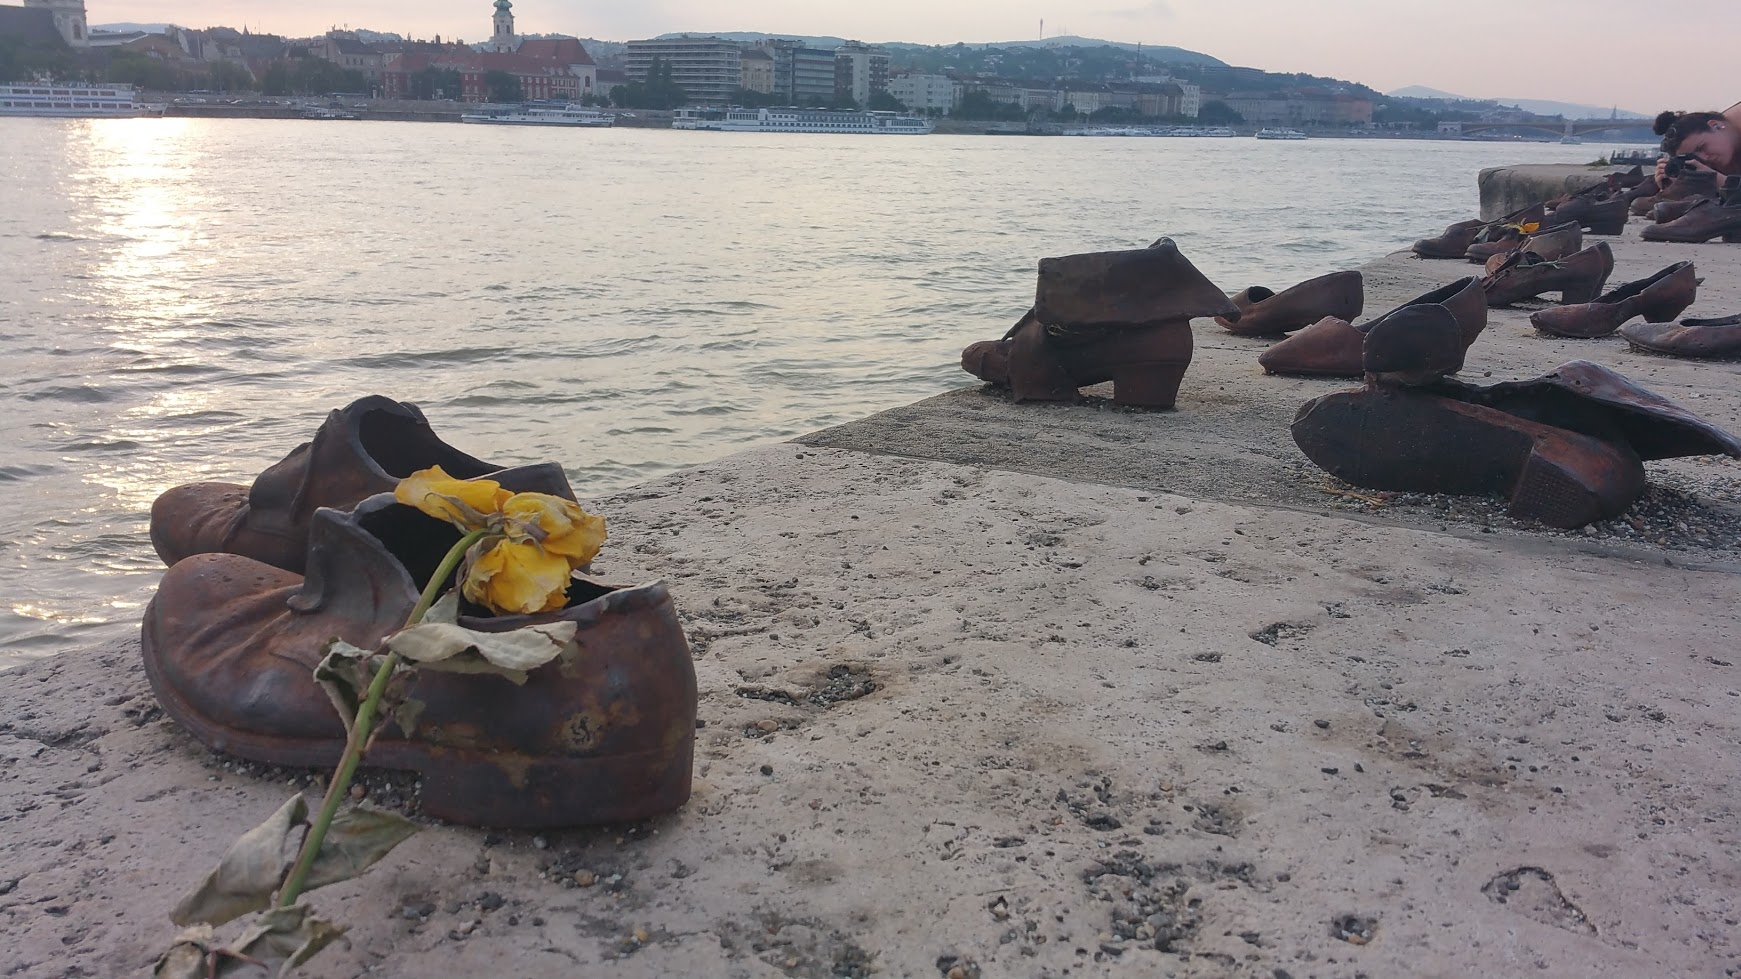 The memorial dedicated to the Jews shot inot the Danube by the Arrow Corss from 1944-1945.